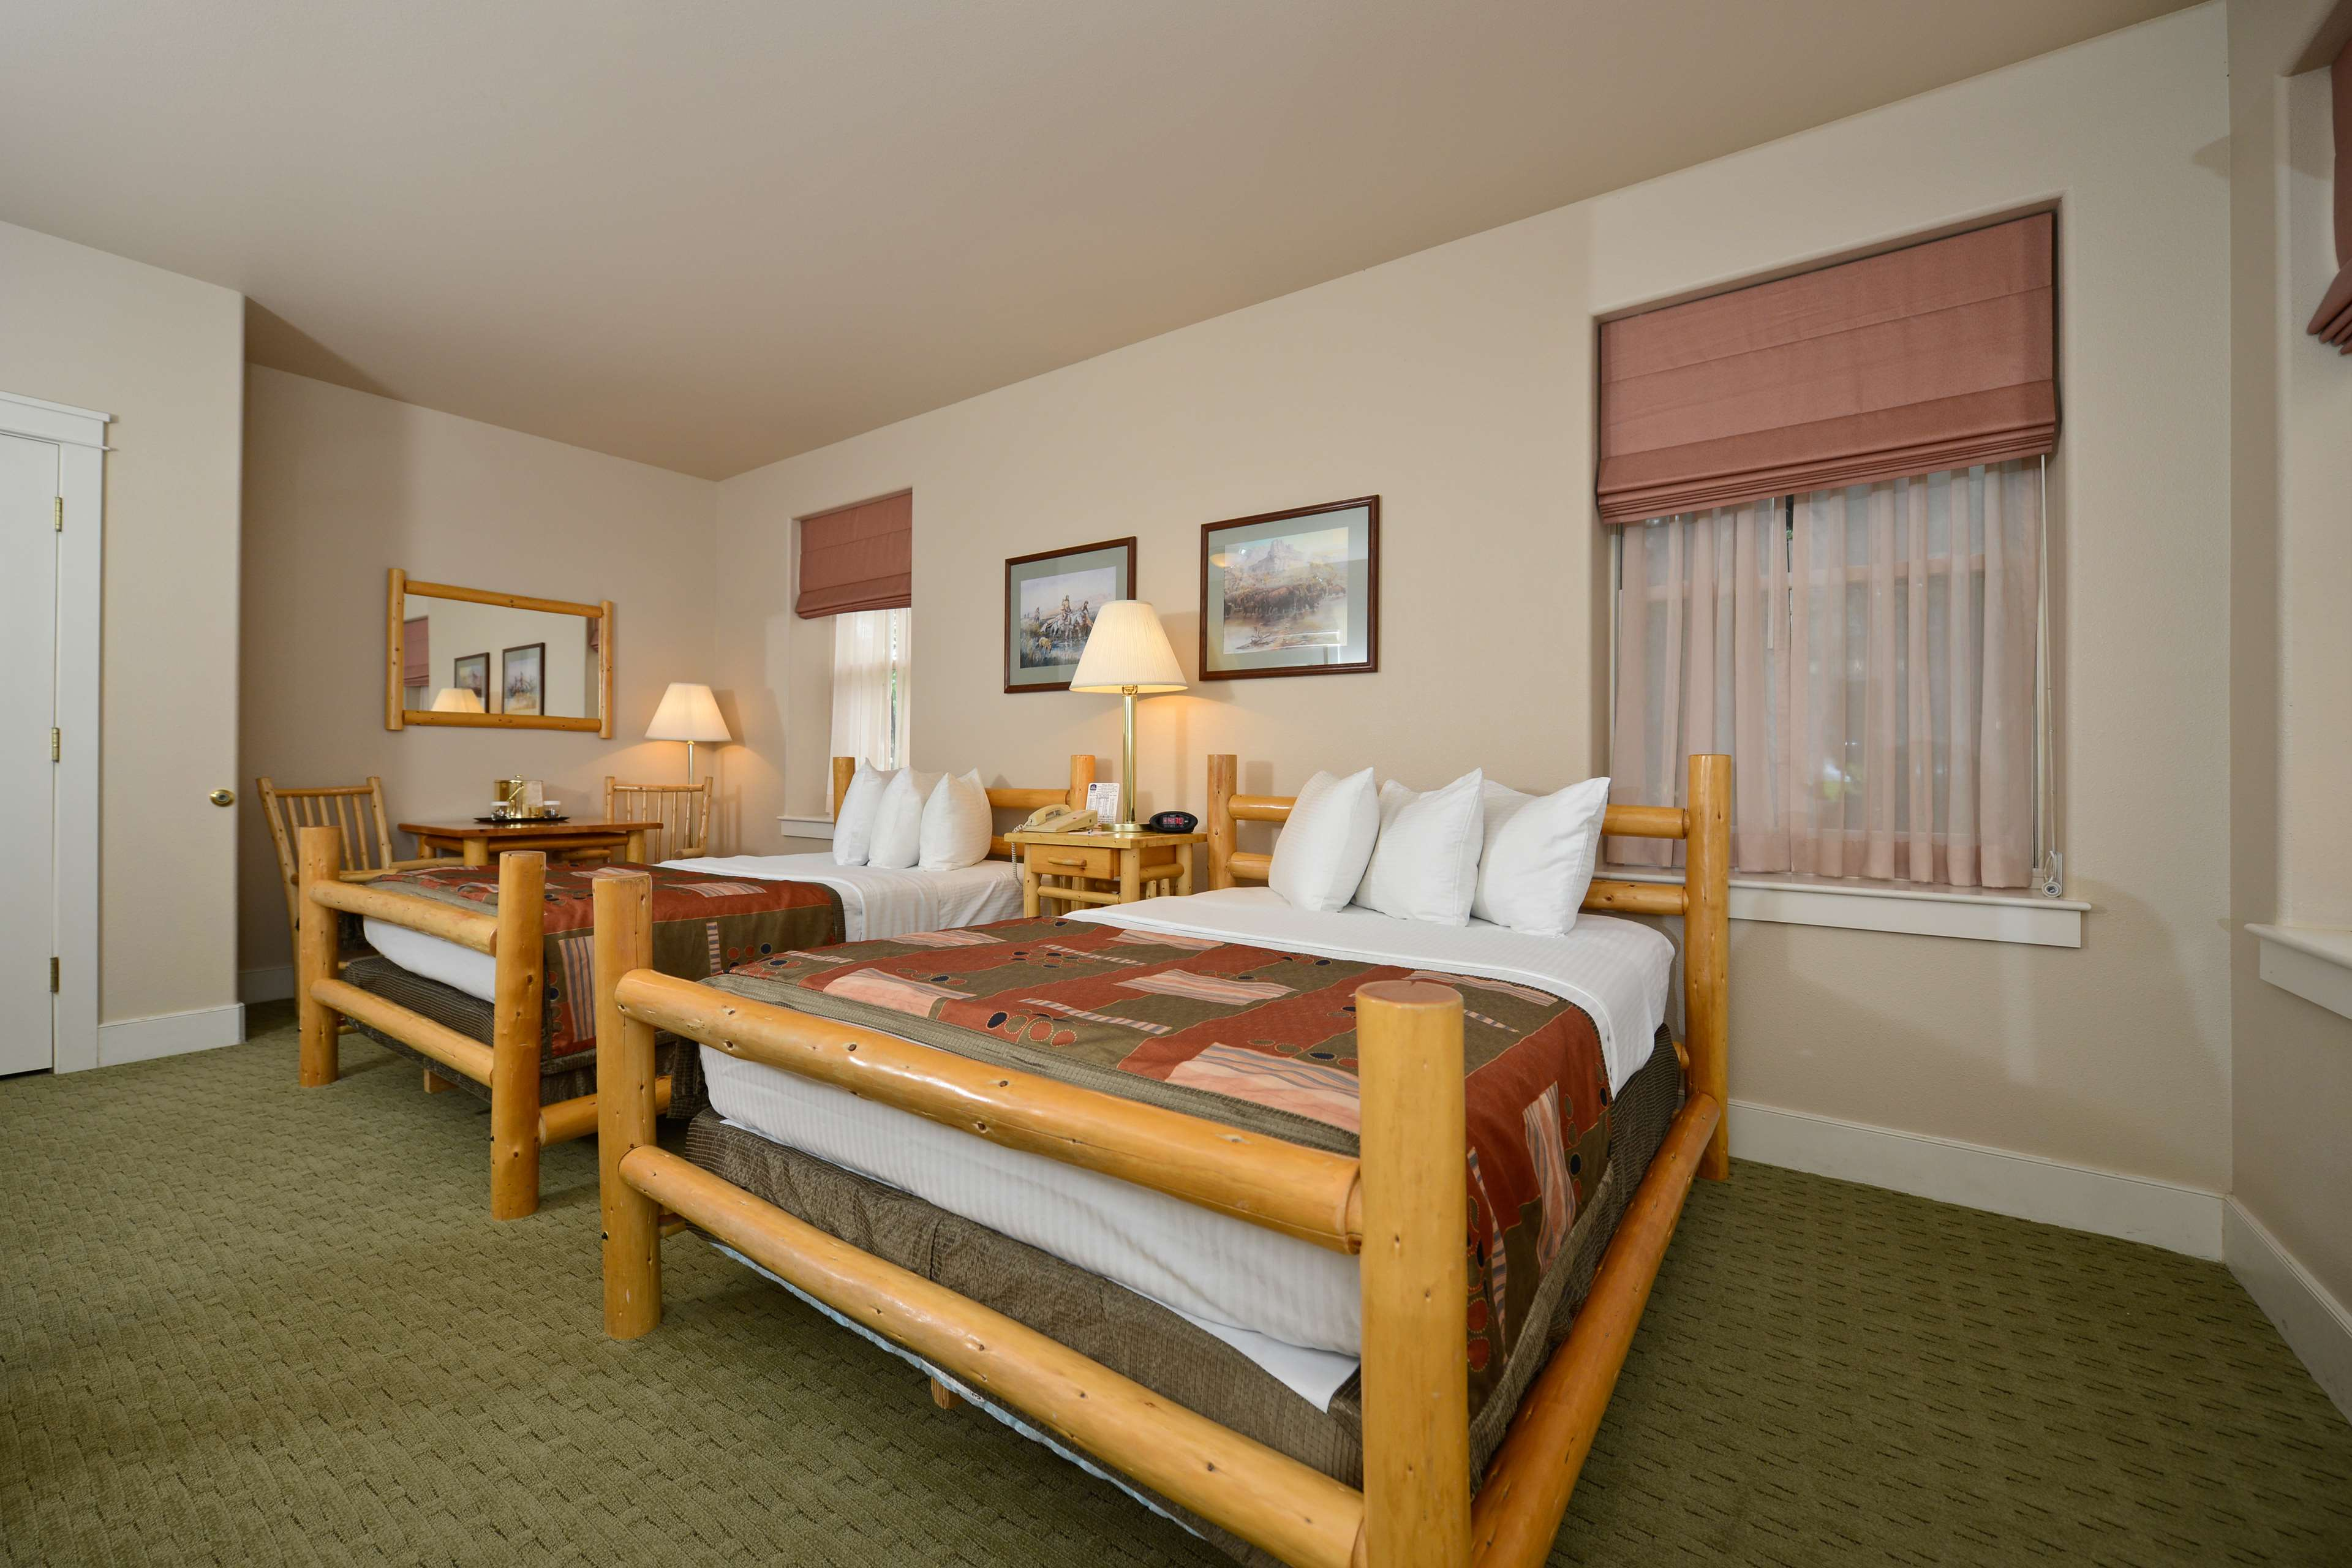 Best Western Plus Plaza Hotel image 39